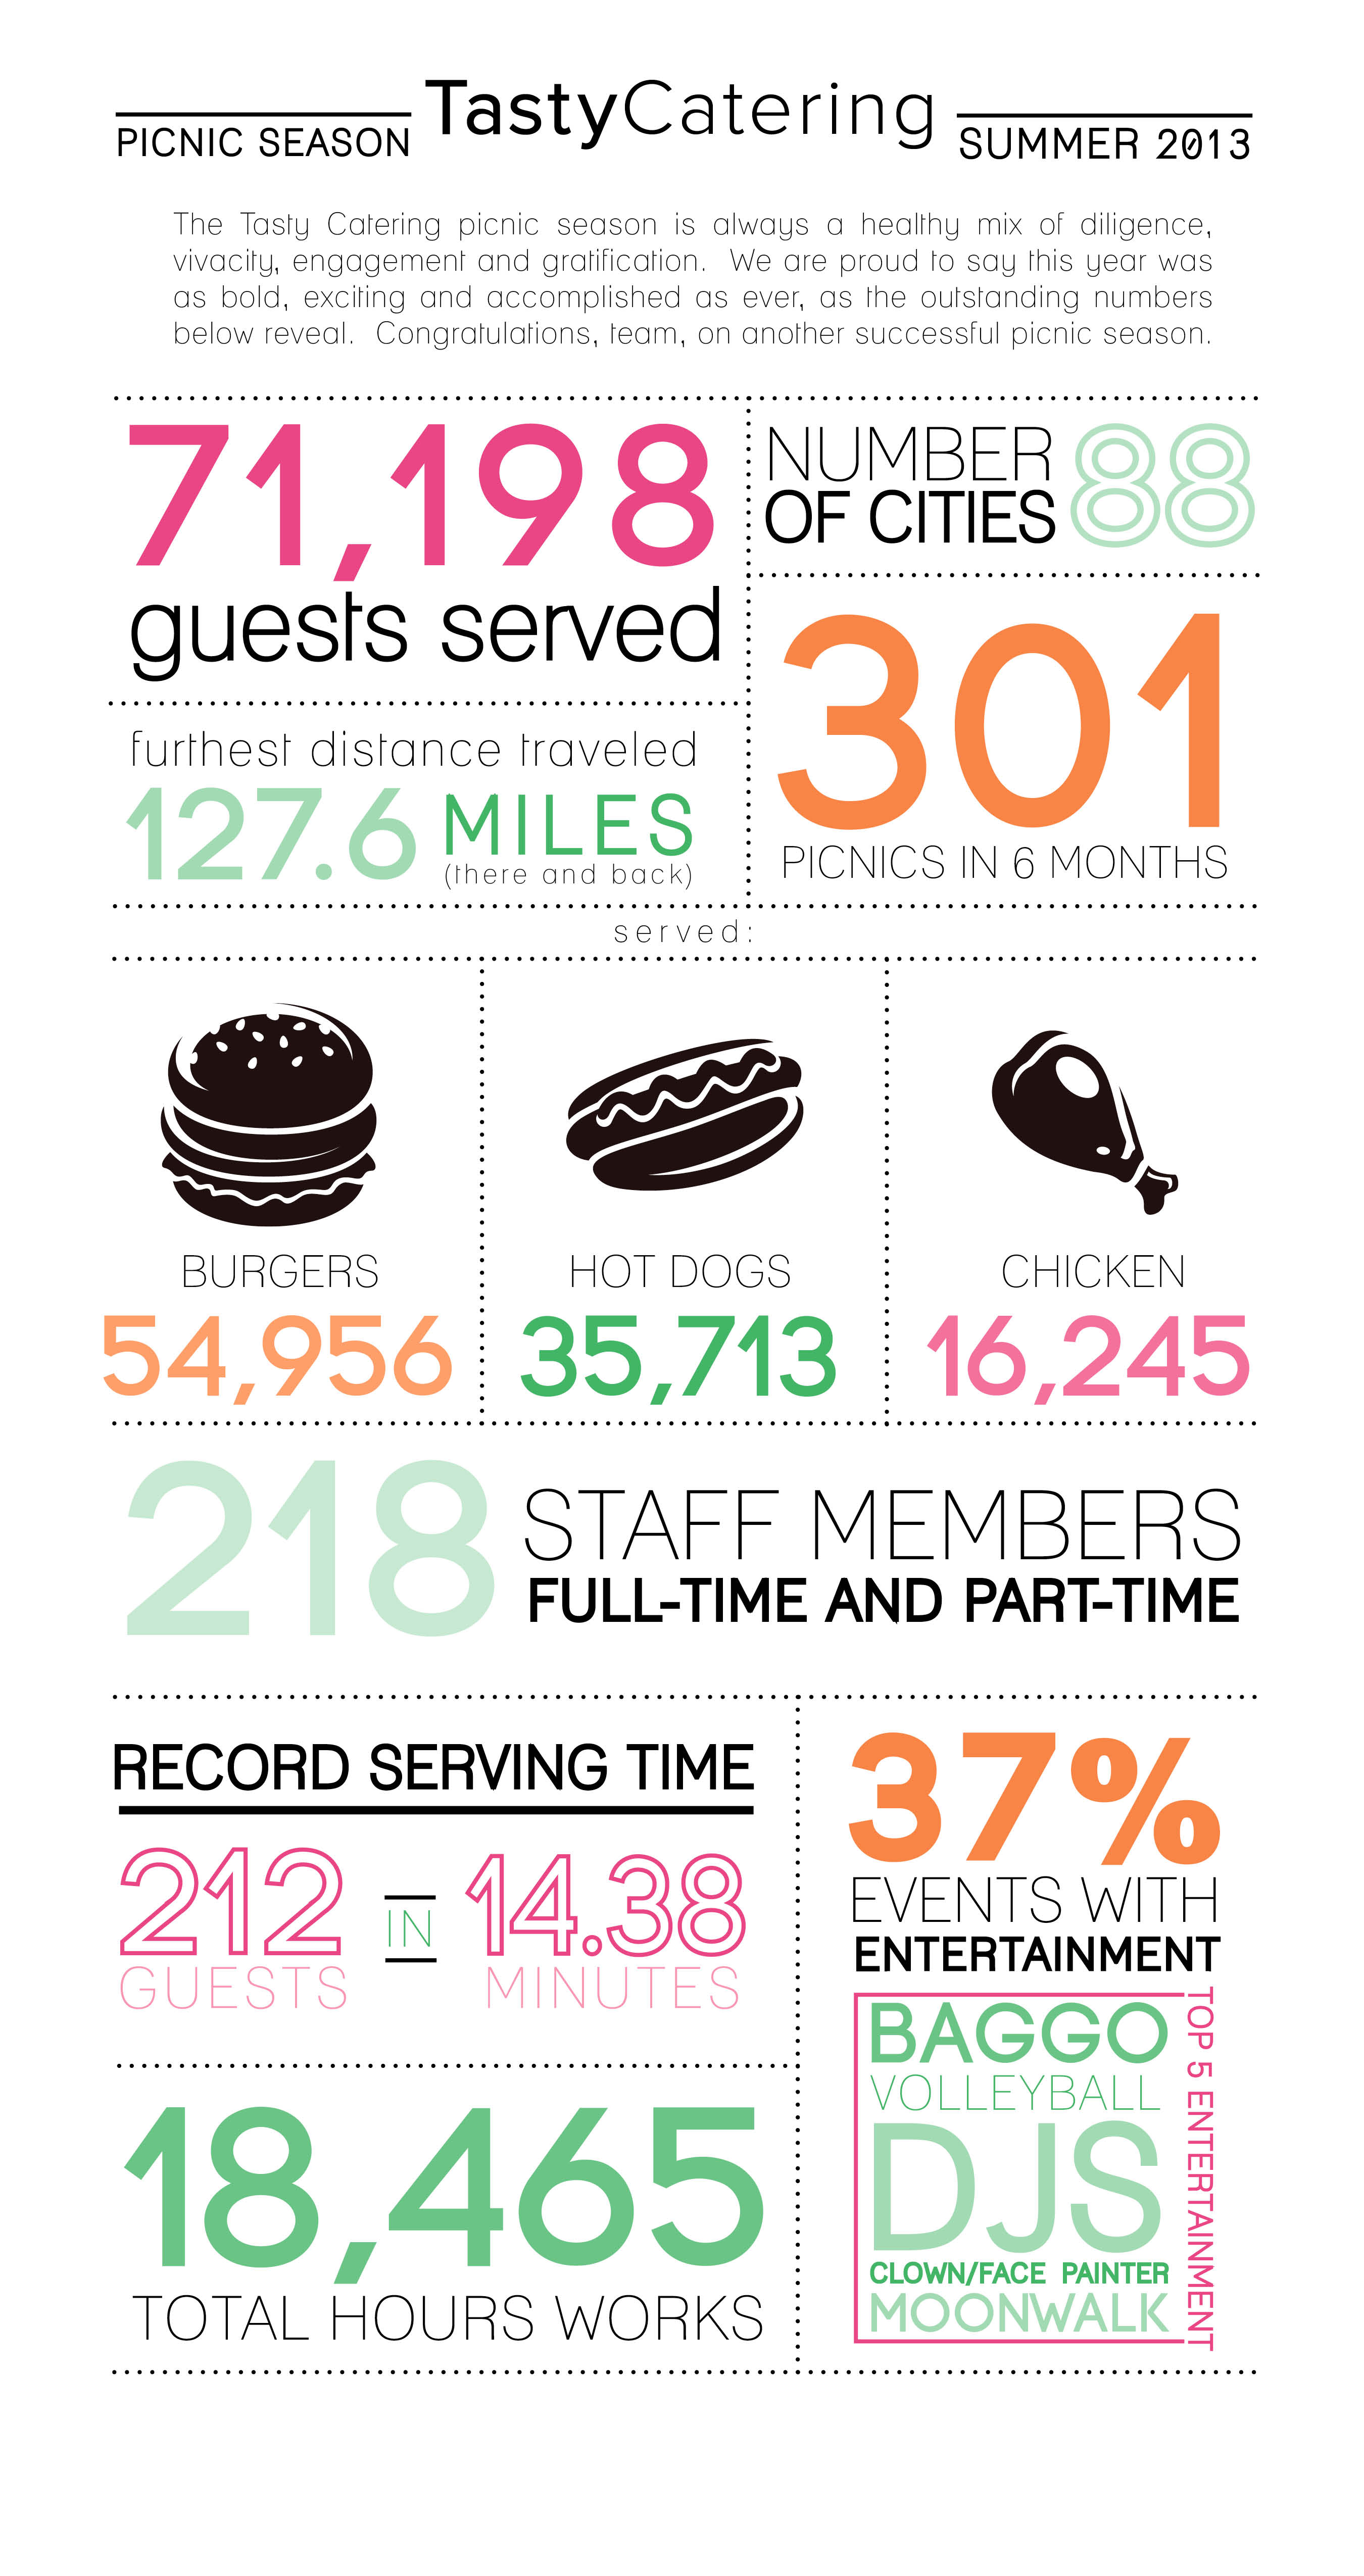 Tasty Catering 2013 Picnic Infographic